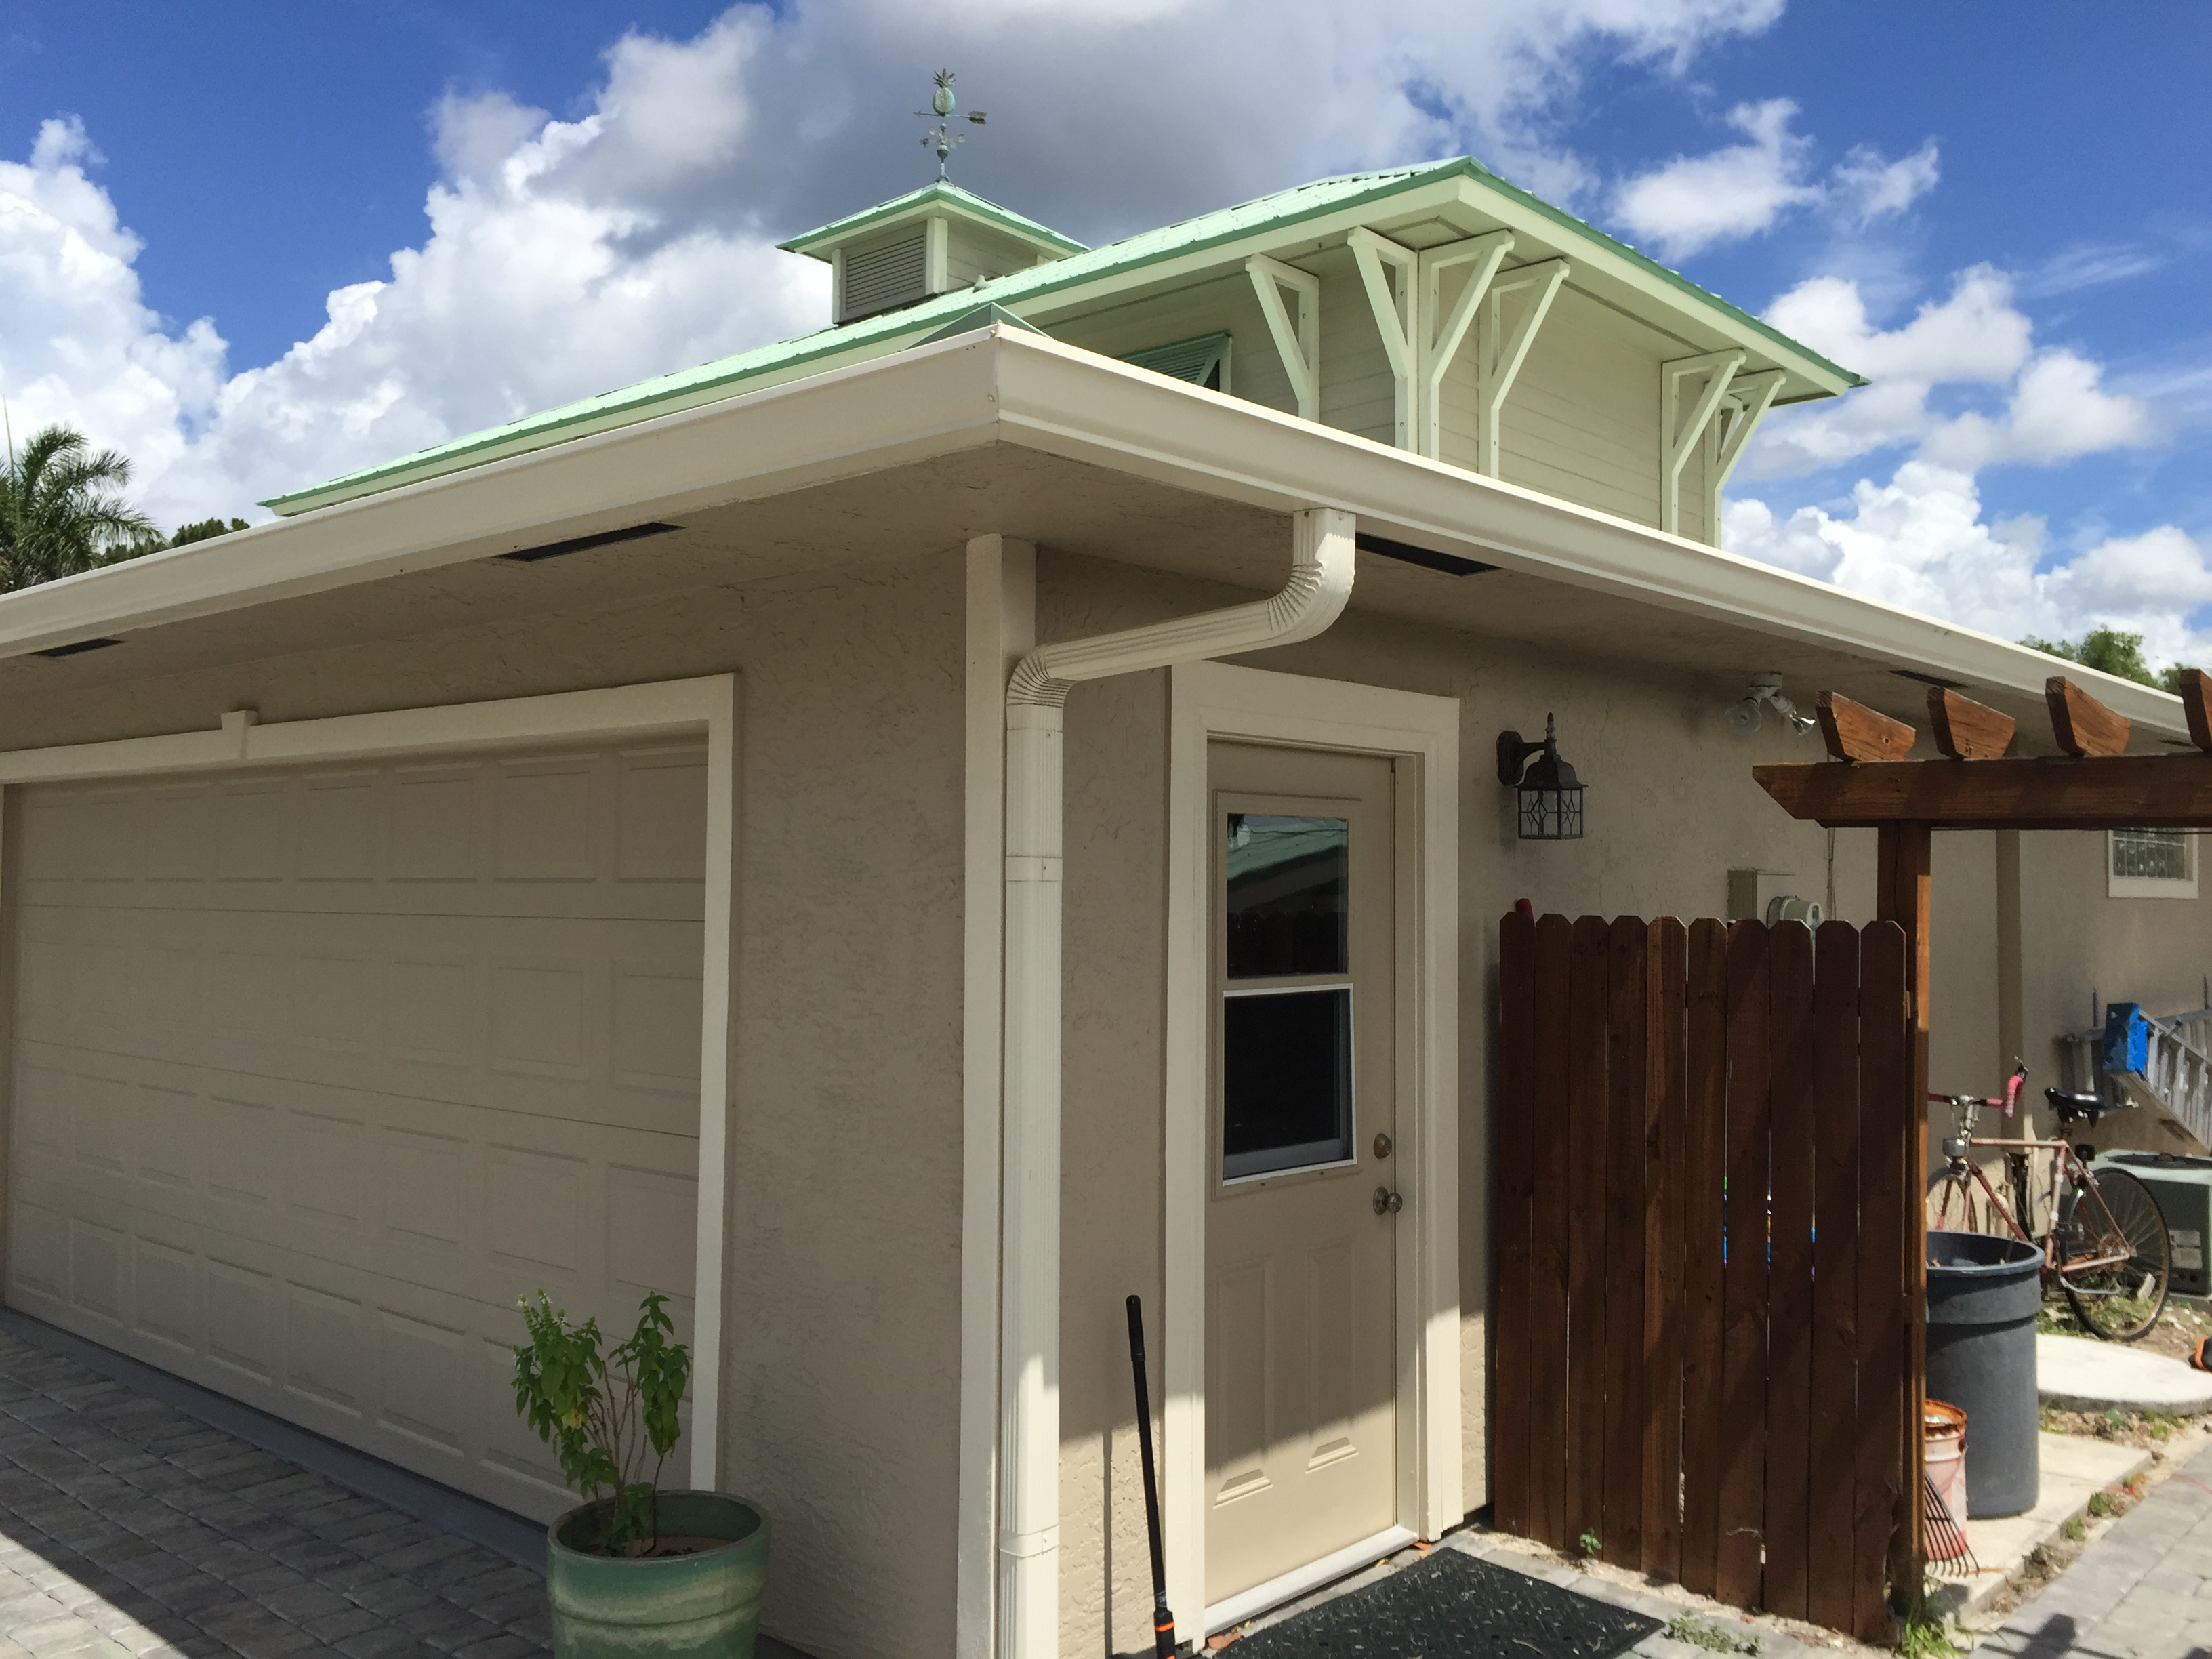 Https Www Gutterguyofflorida Com Gutters Custom Gutters Installation Copper Aluminium Half Round K Style Bo Gutters How To Install Gutters Curb Appeal